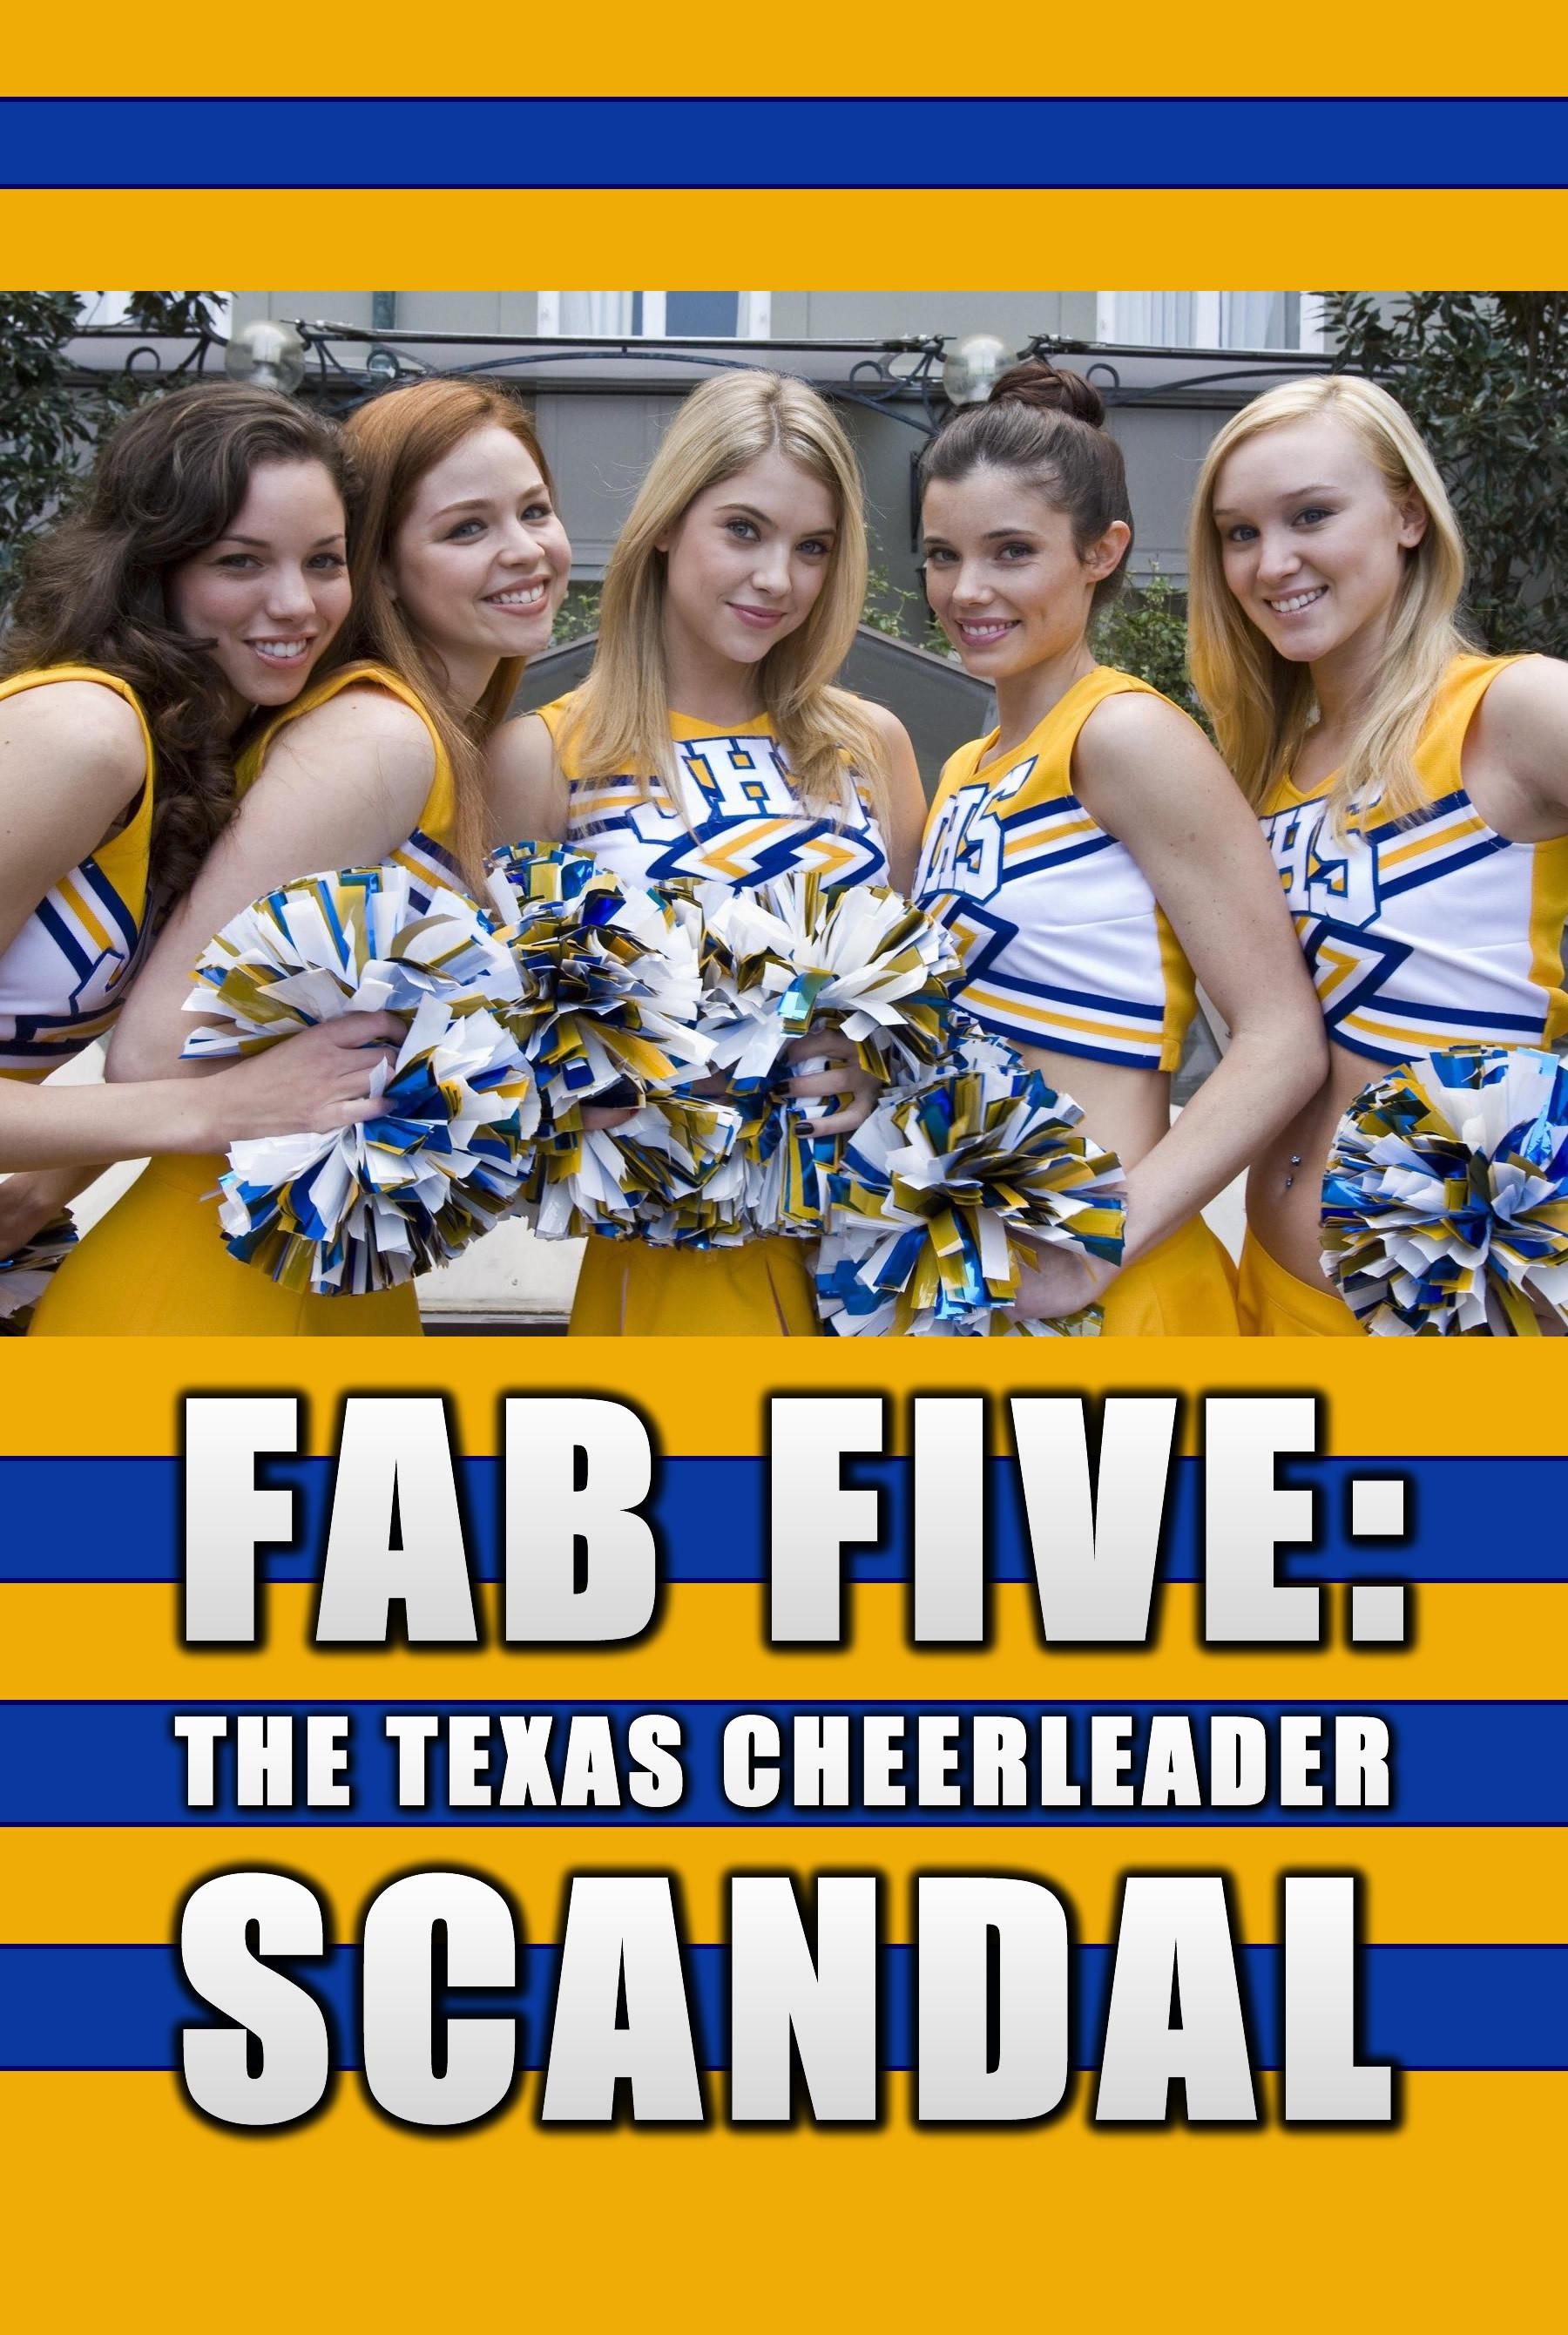 The Texas Cheerleader Scandal Story